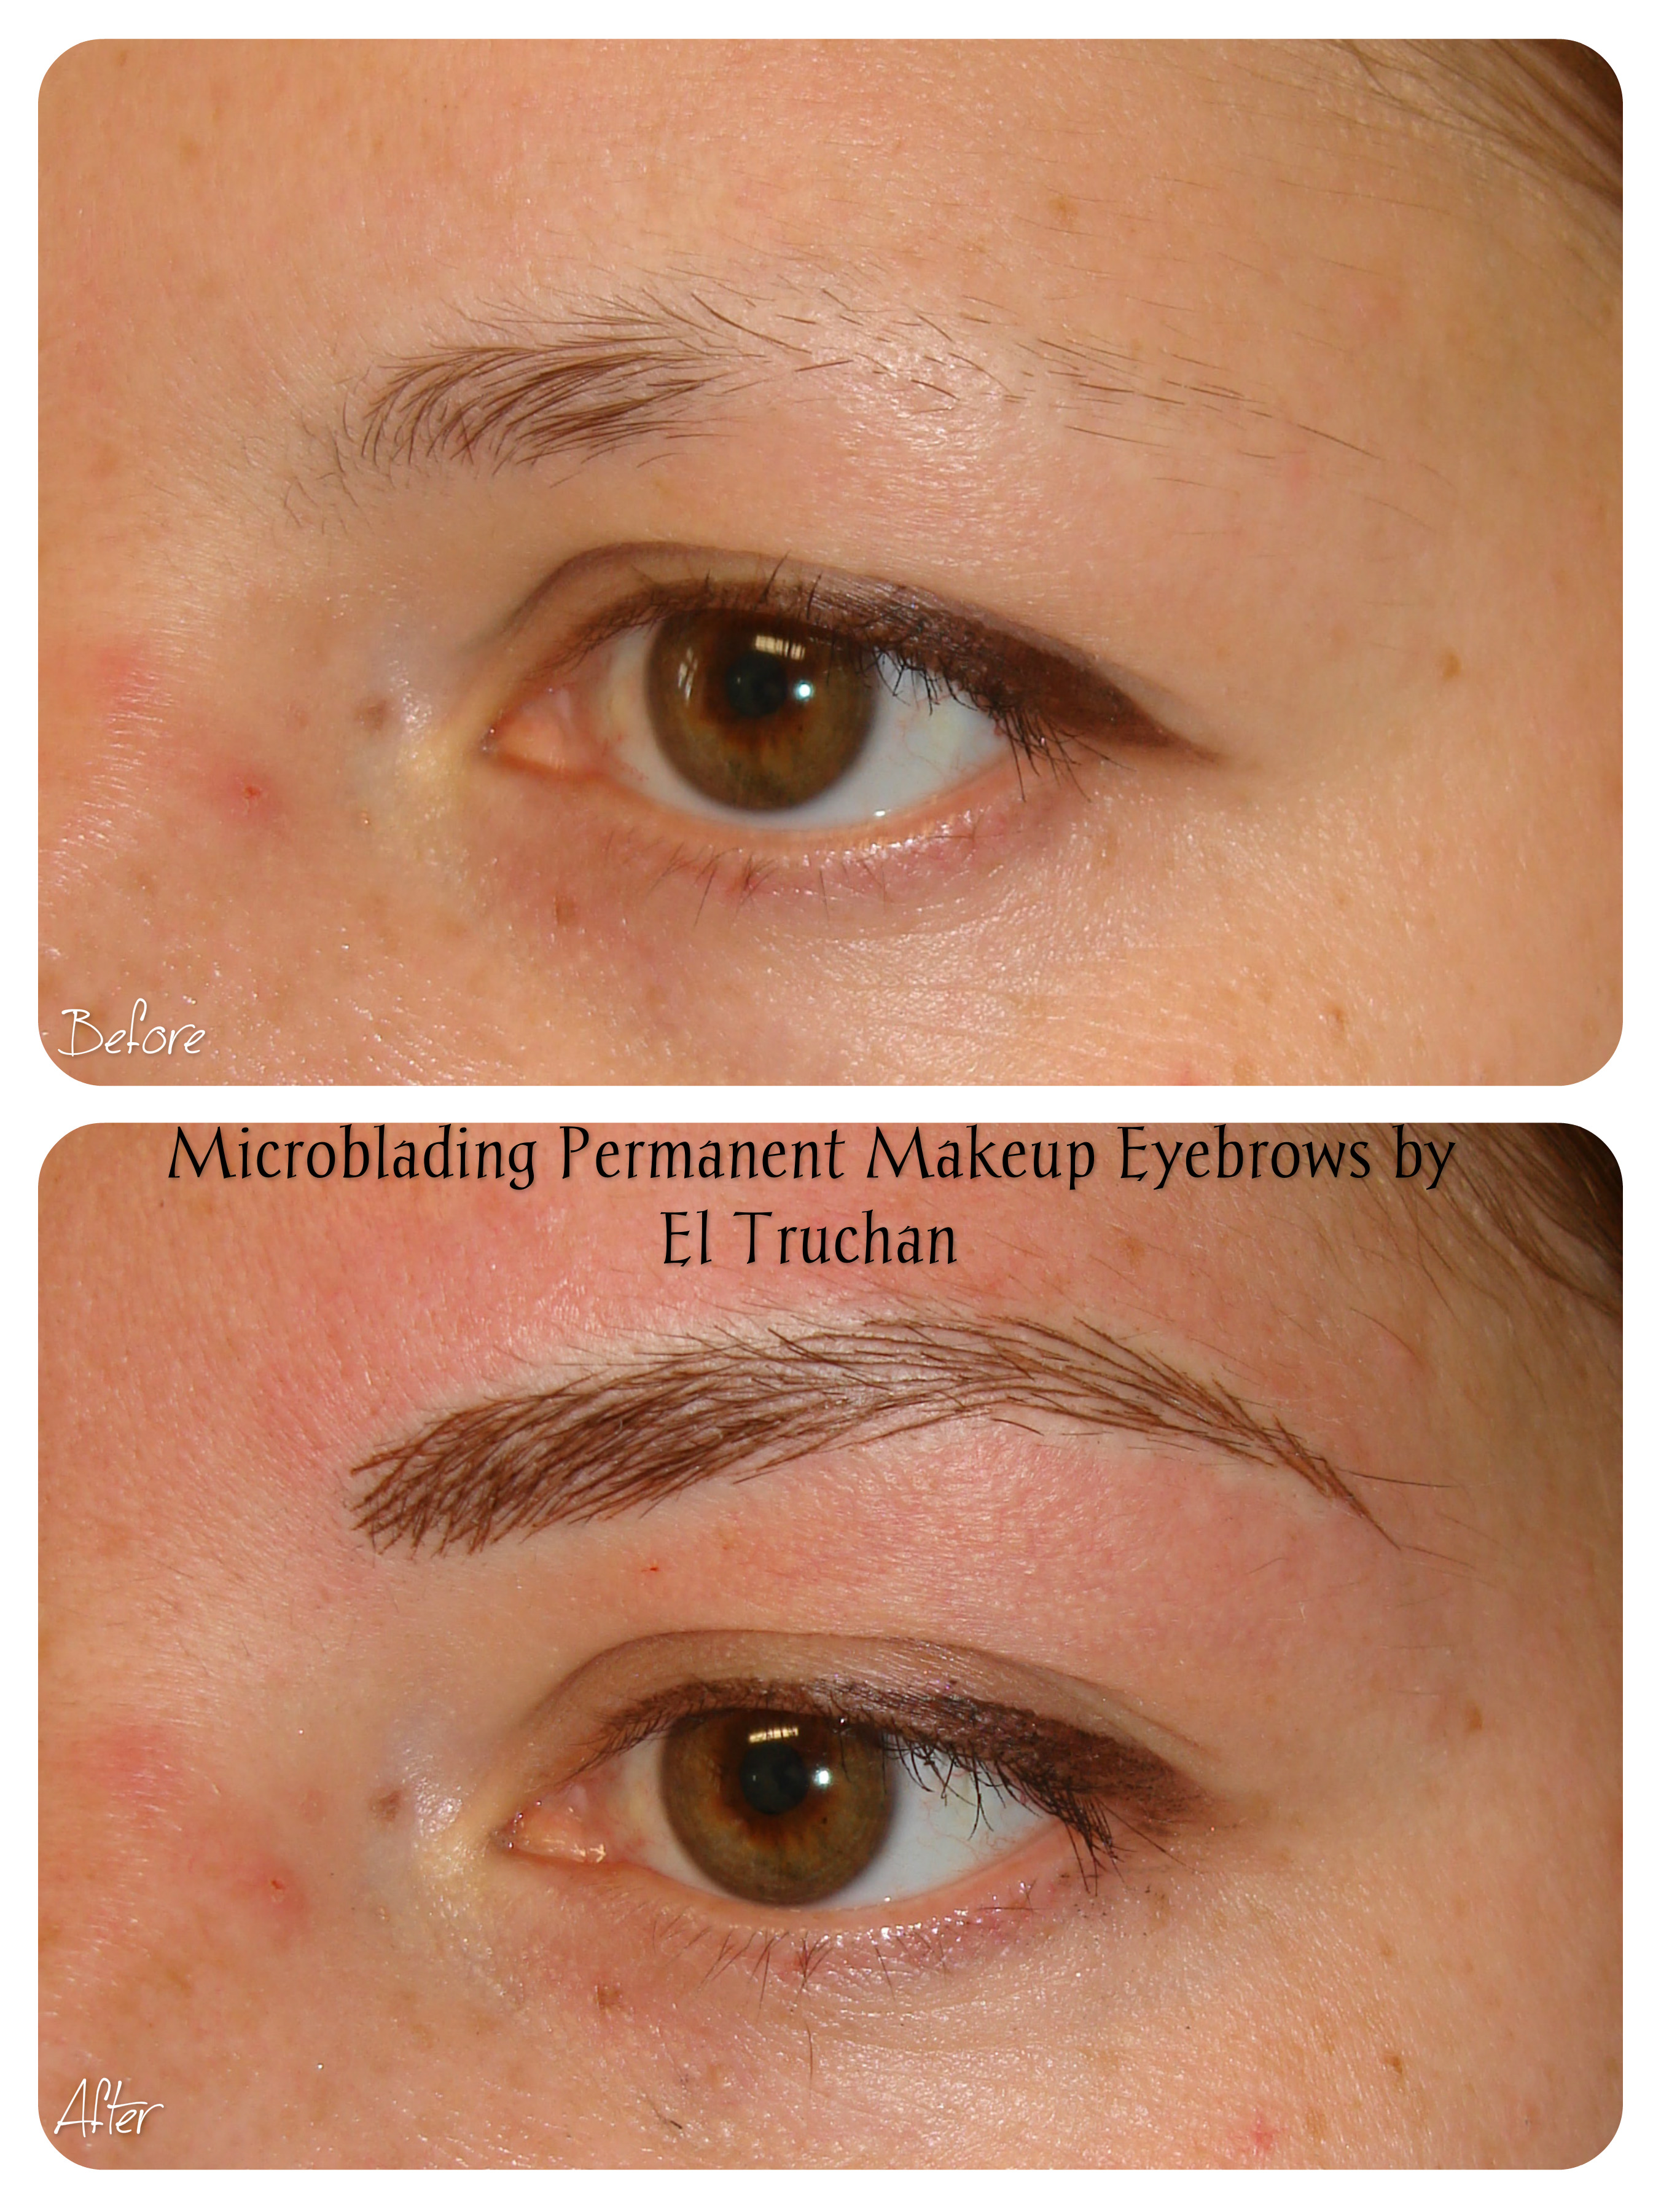 Microblading permanent makeup by El Truchan